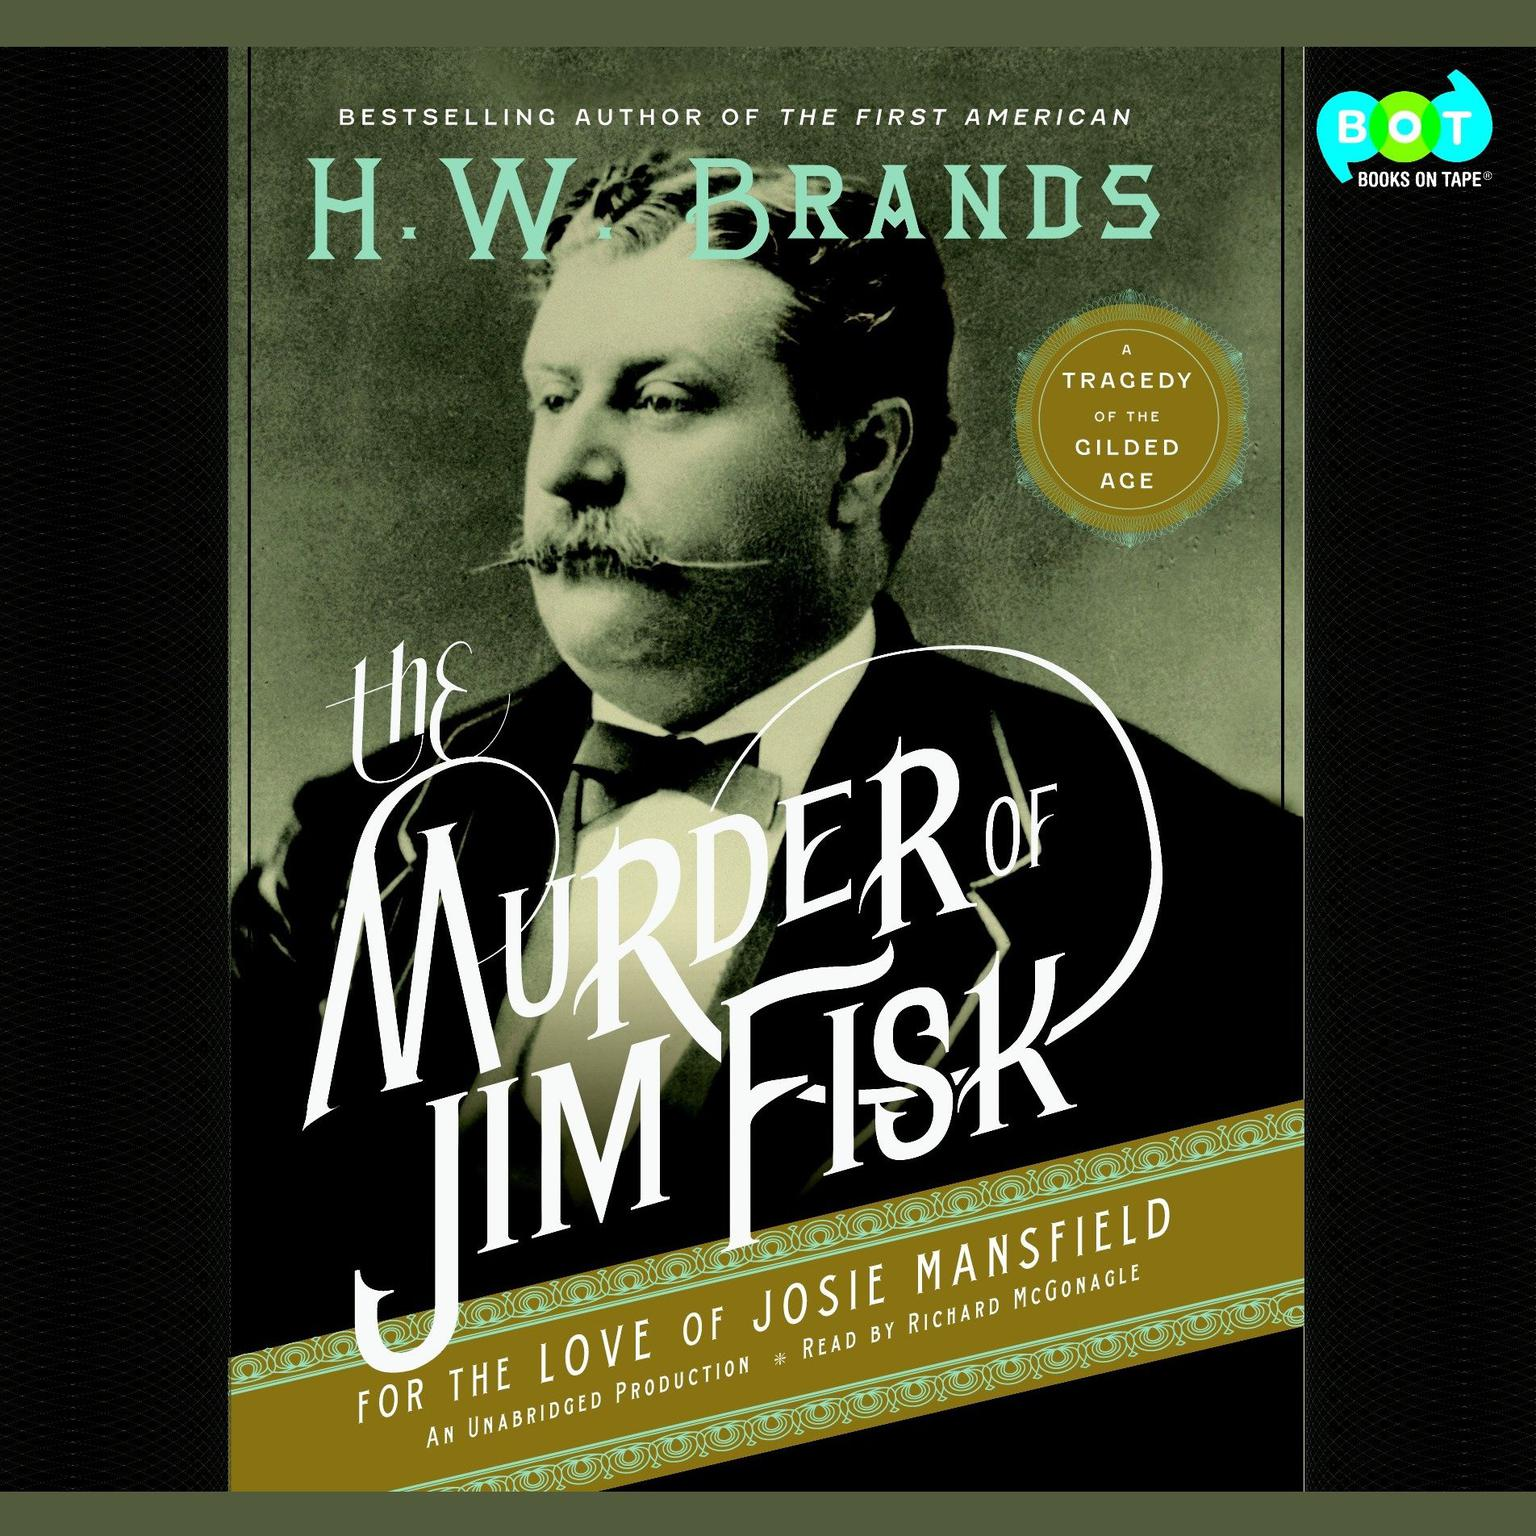 Printable The Murder of Jim Fisk for the Love of Josie Mansfield: A Tragedy of the Gilded Age Audiobook Cover Art